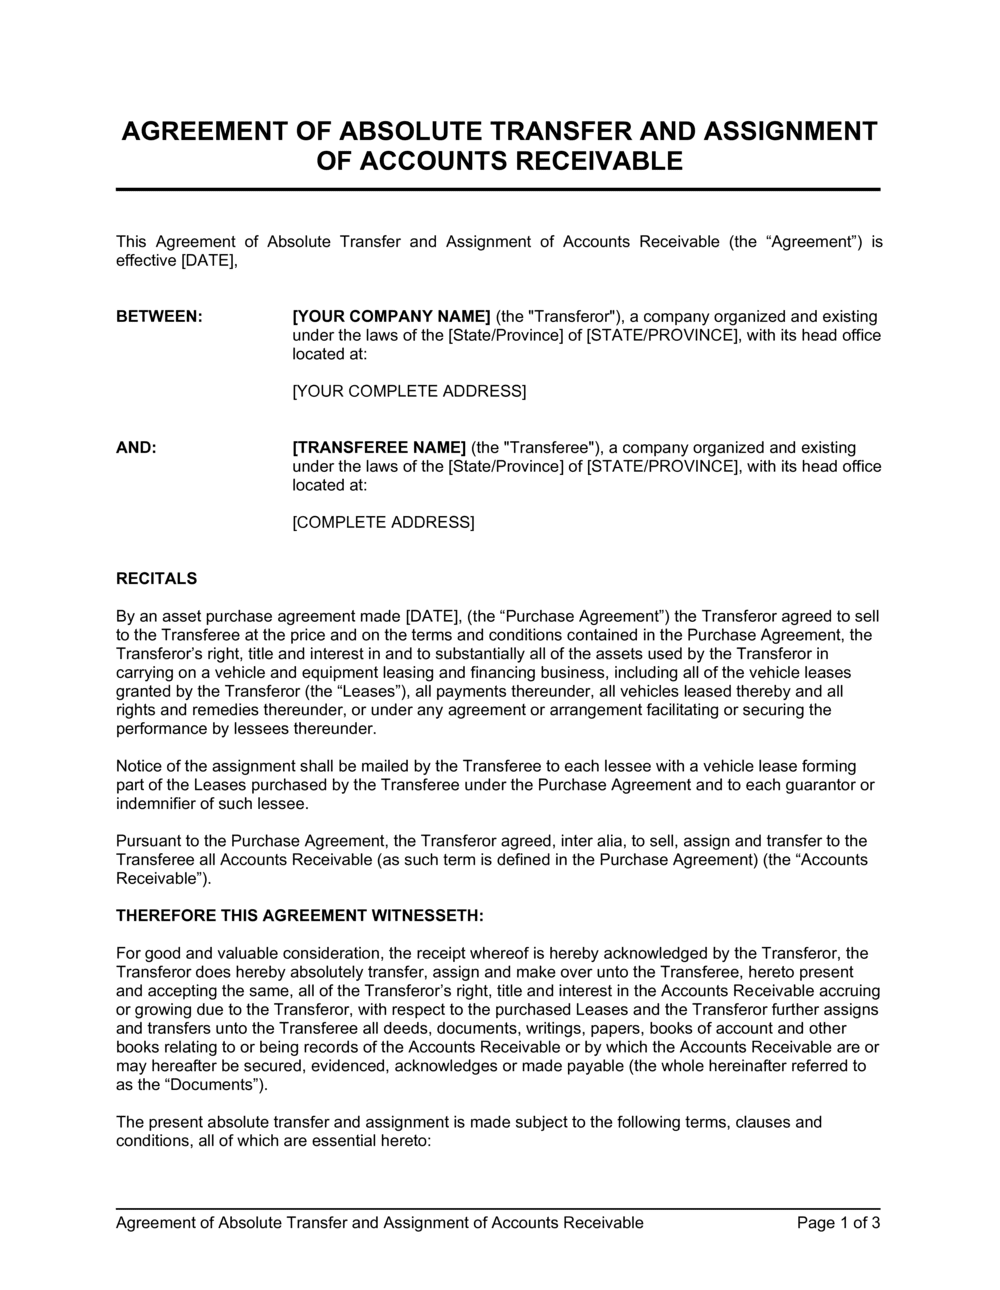 Business-in-a-Box's Agreement of Absolute Transfer and Assignment of Accounts Receivable Template